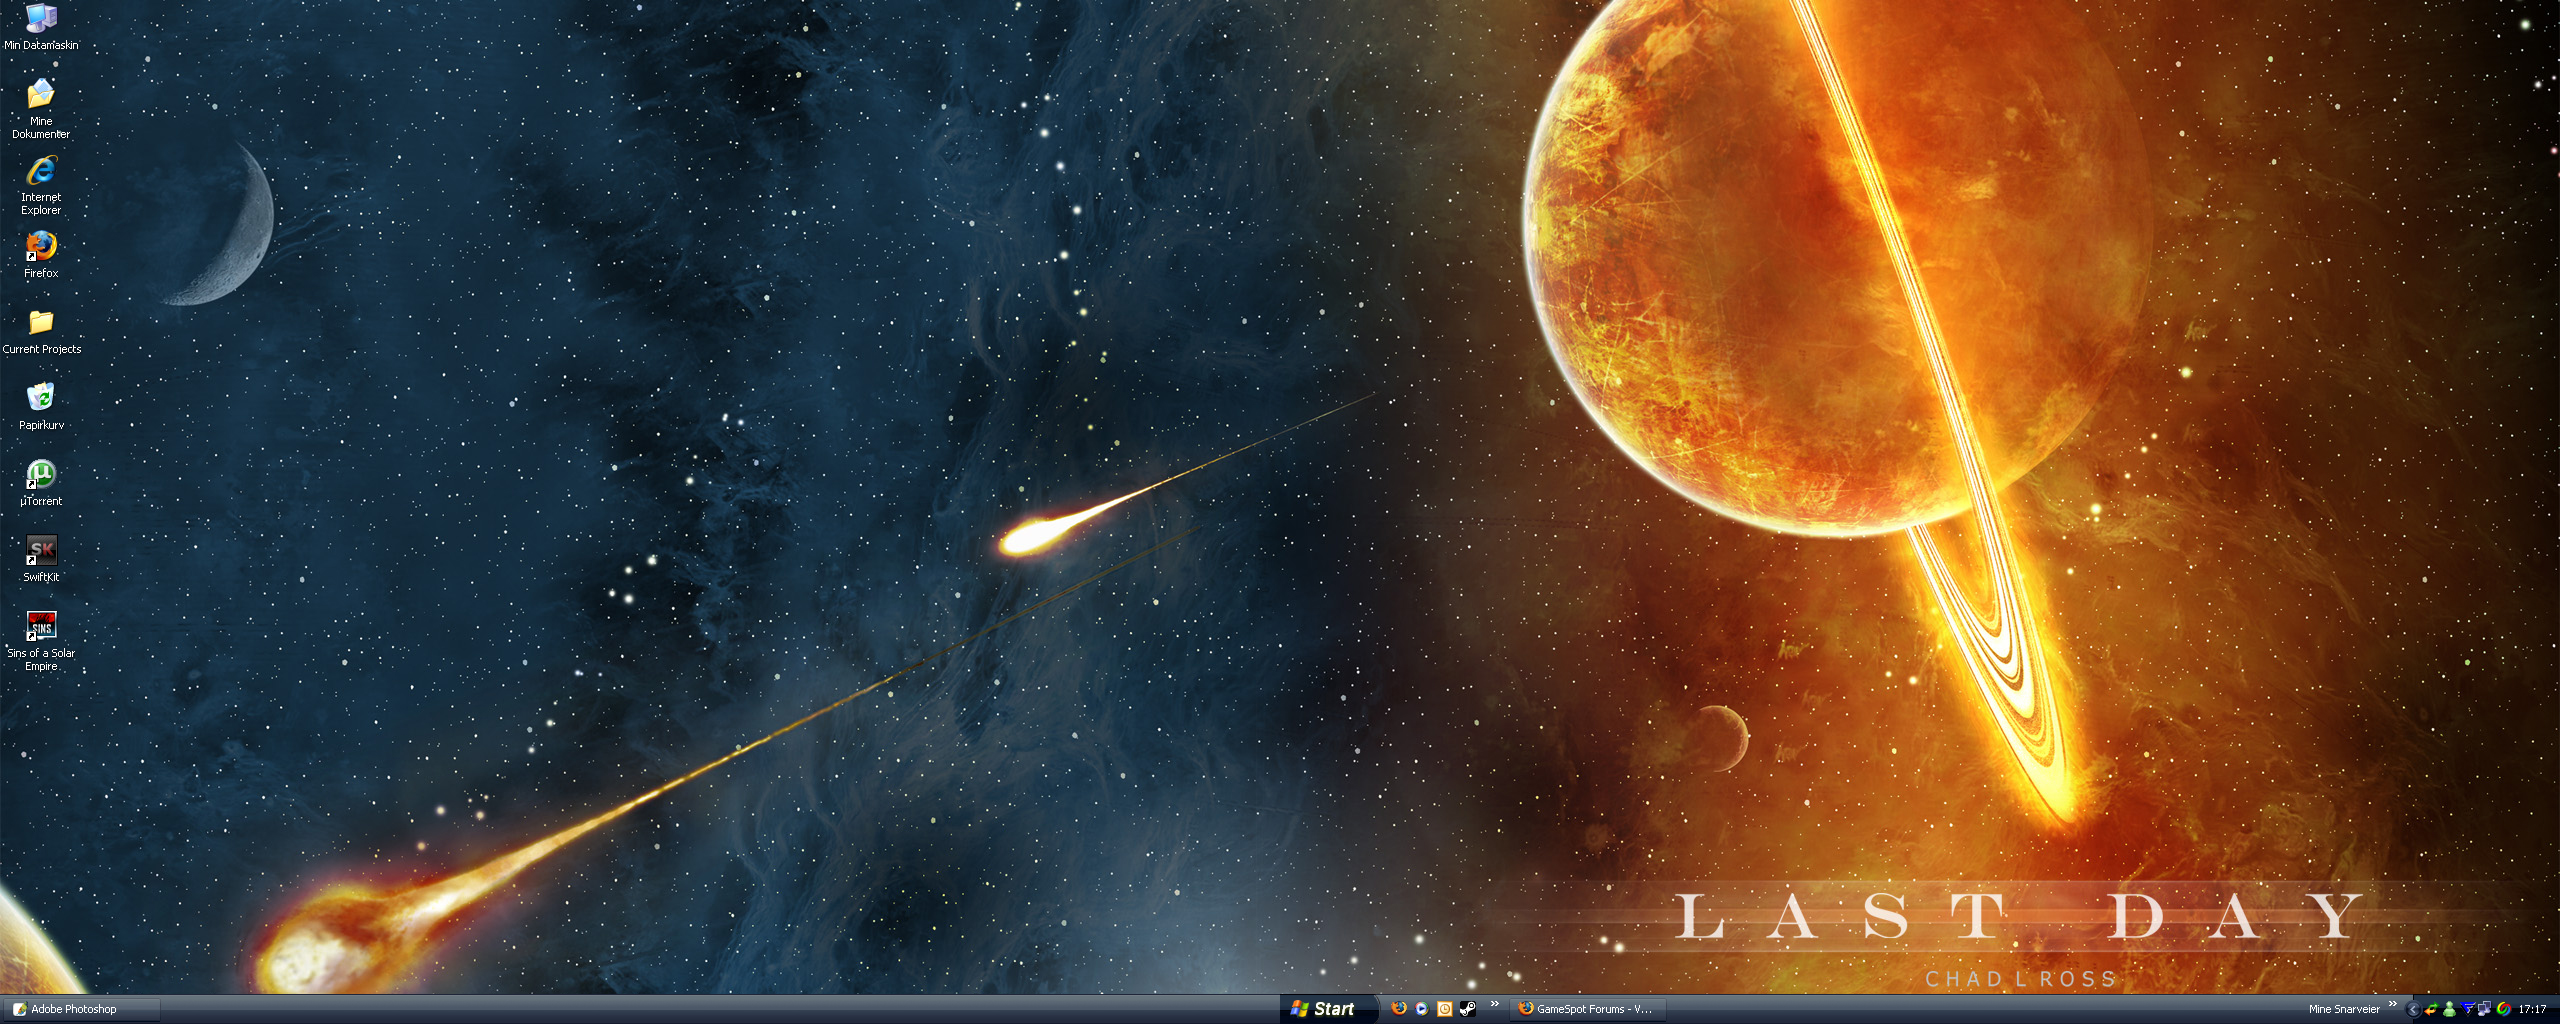 If any of you know any good sites with Dual Monitor Wallpapers please let me